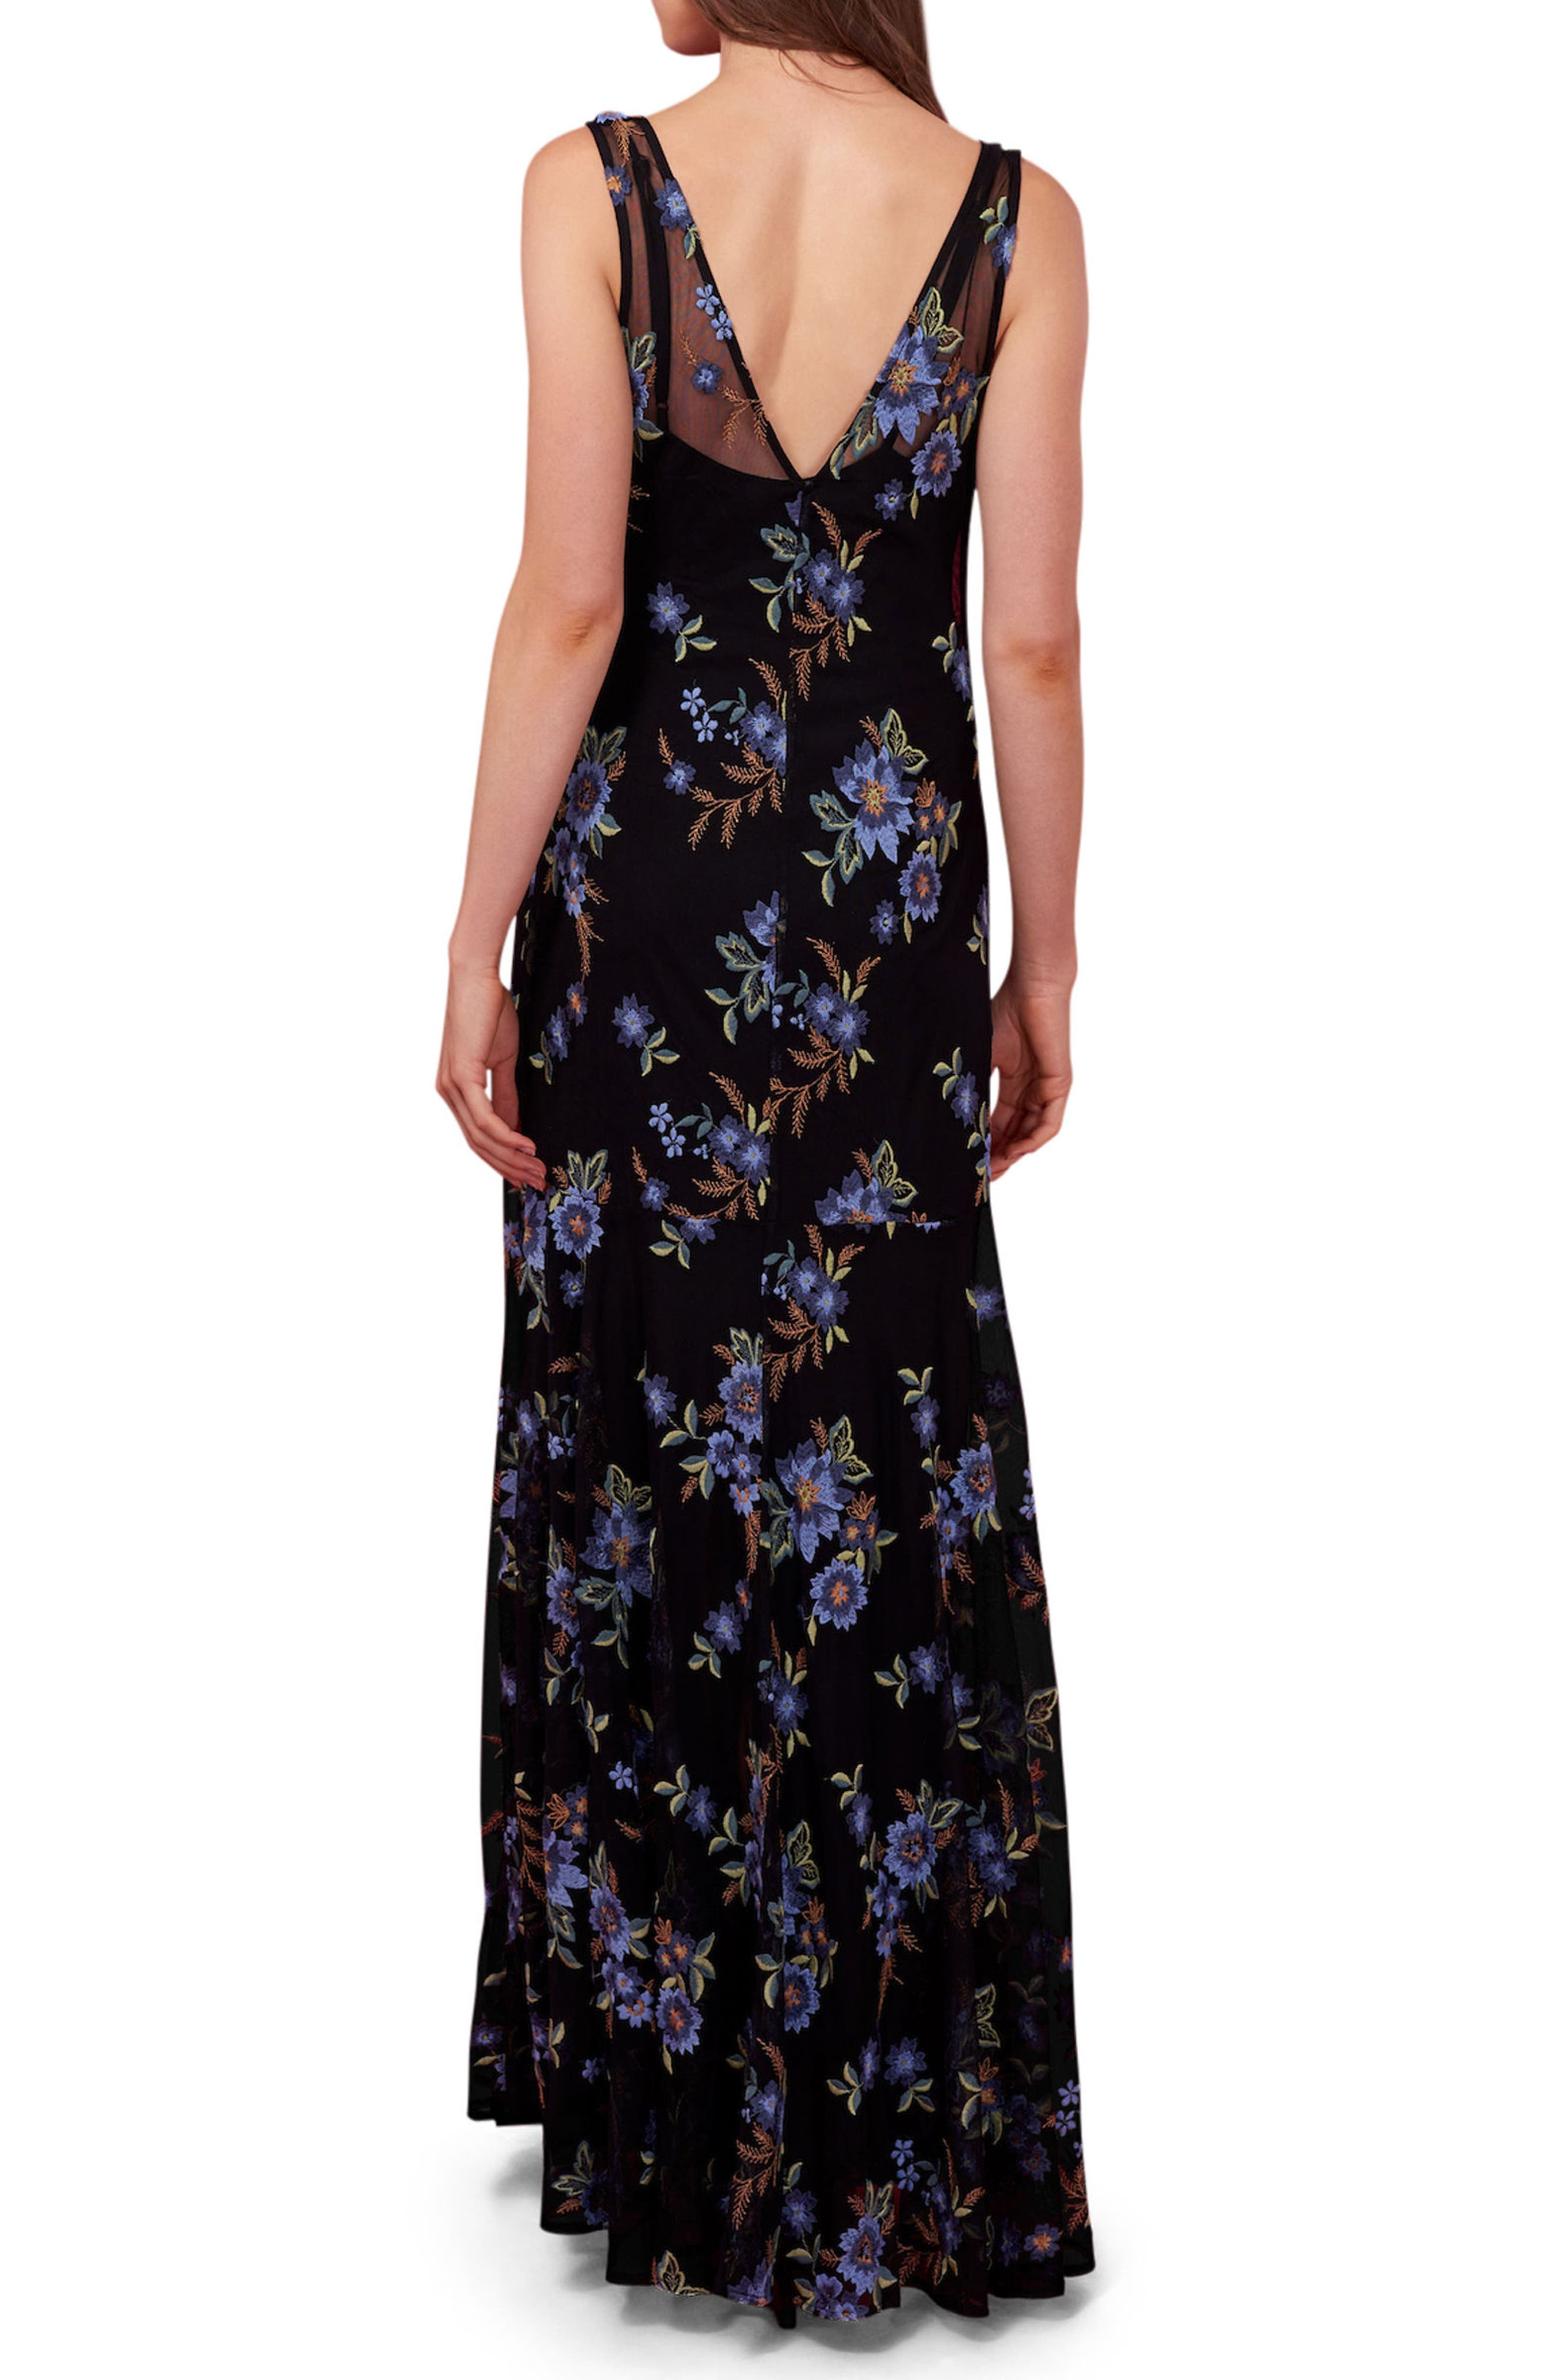 Embroidered Mesh Maxi Dress,                             Alternate thumbnail 2, color,                             002